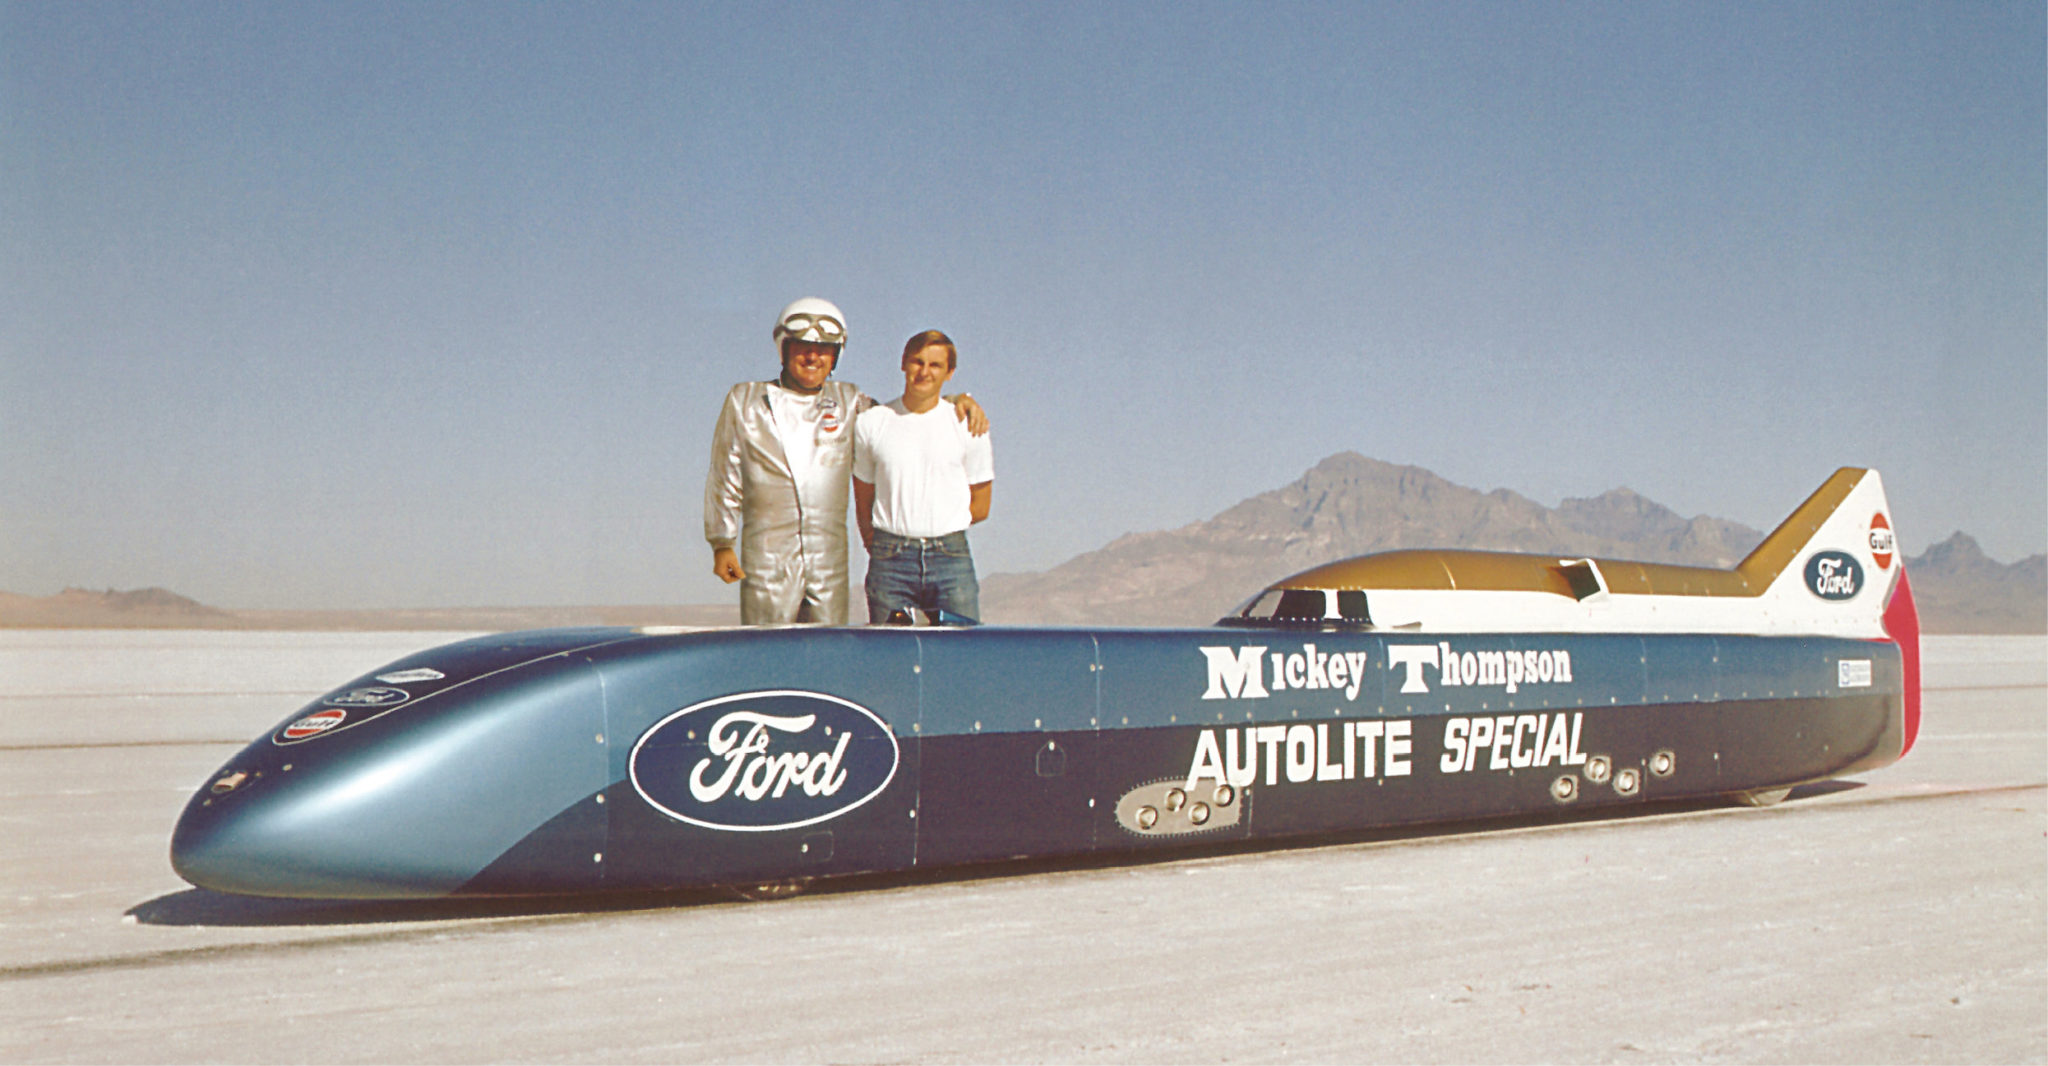 Mickey Thompson and his son Danny stand with Challenger II, then the Autolite Special, in 1968